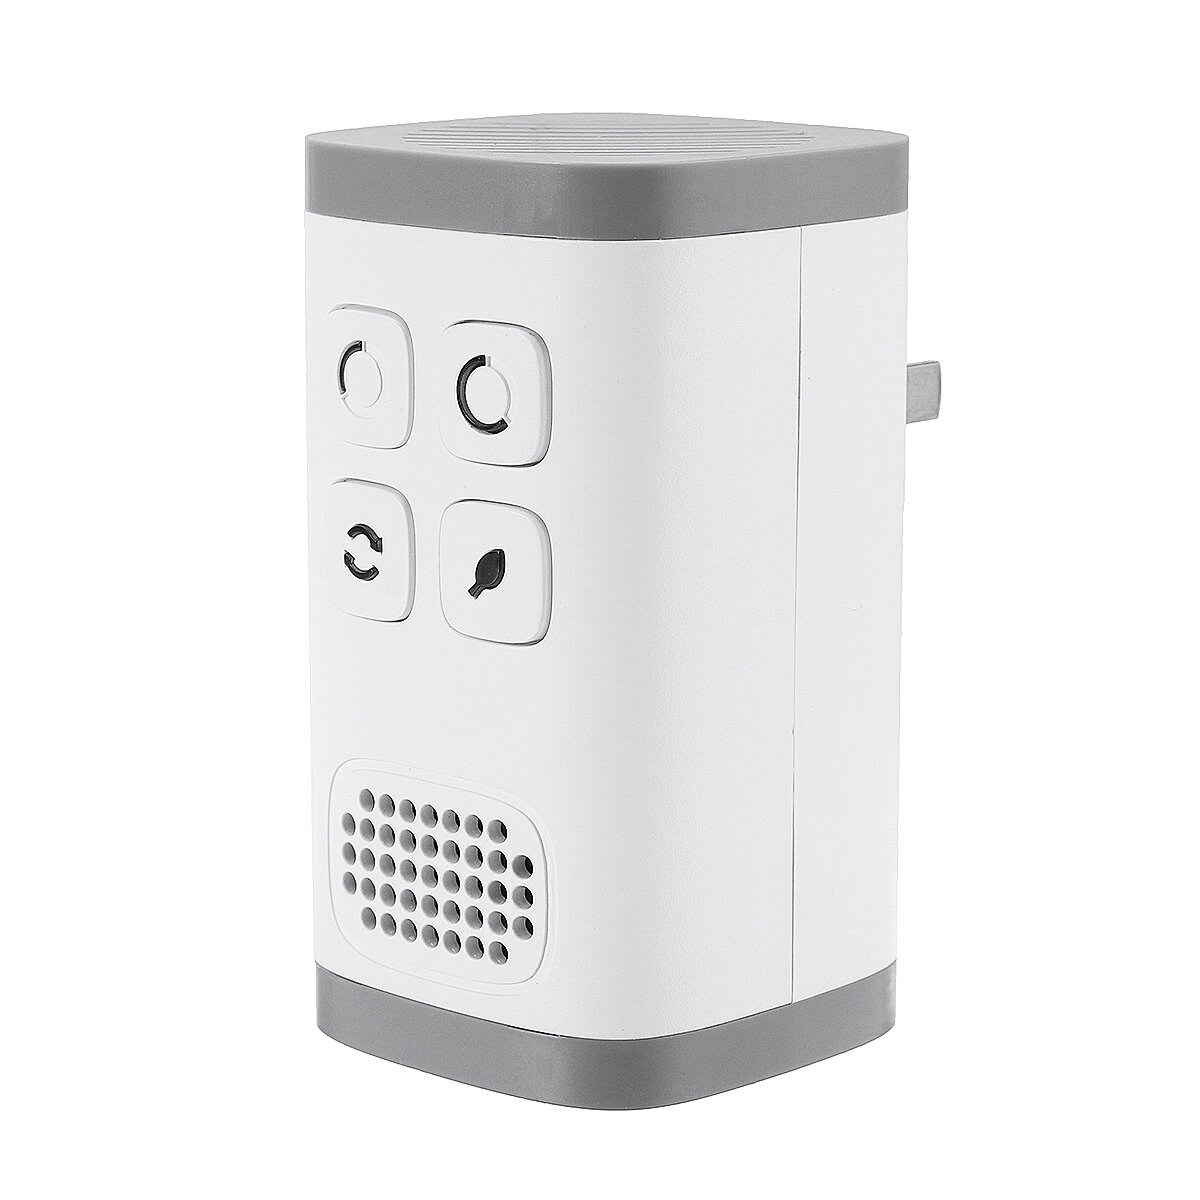 AC110-240V Plug-in Air Purifier Ozone Generator Ionizer Clean Industrial Grade Odor Remover Air Purifier Negative Ion Ge фото